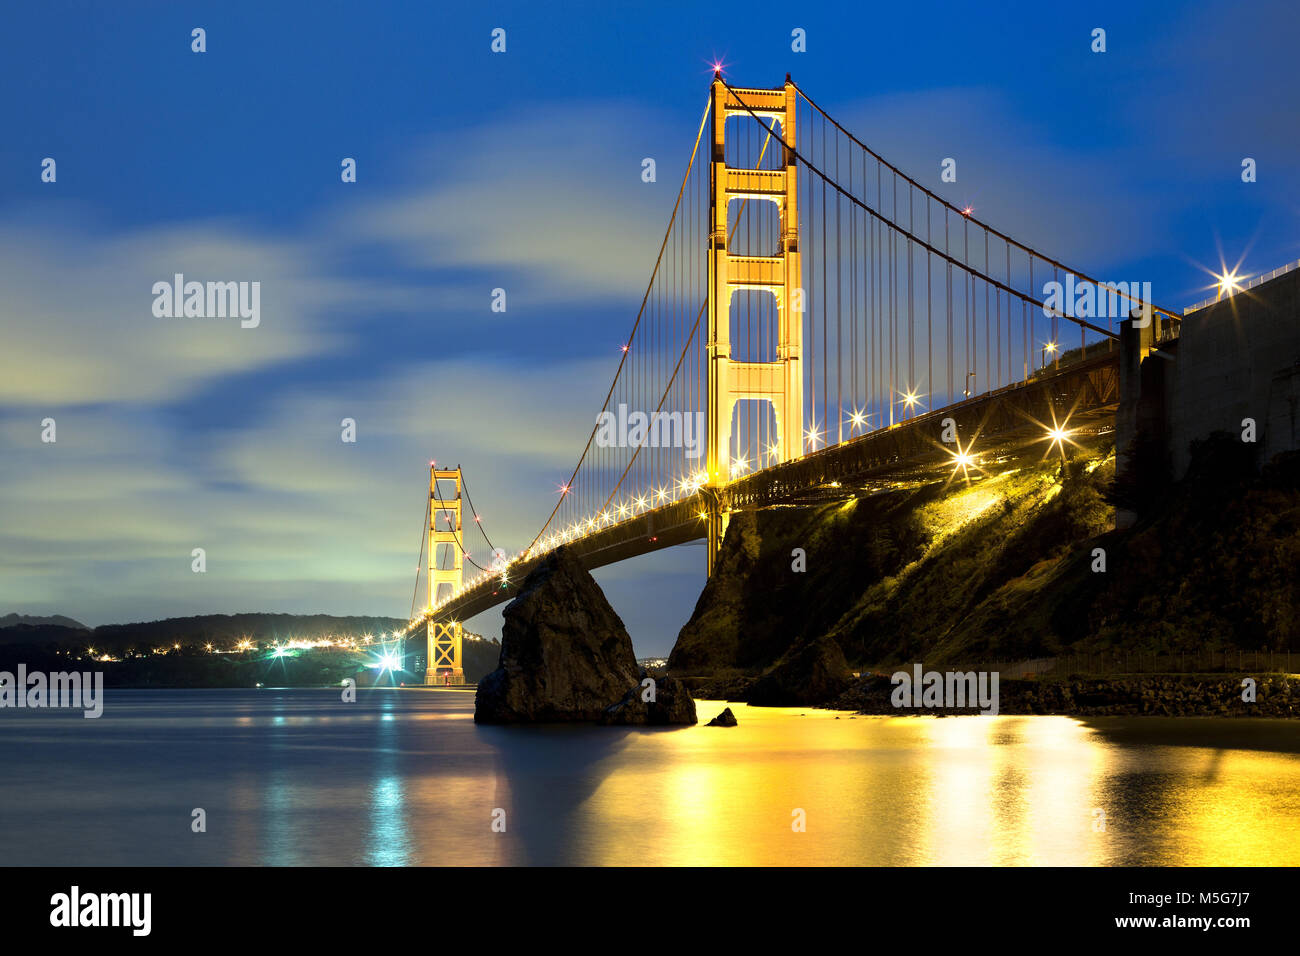 The Golden Gate Bridge in San Francisco, California, USA - Stock Image